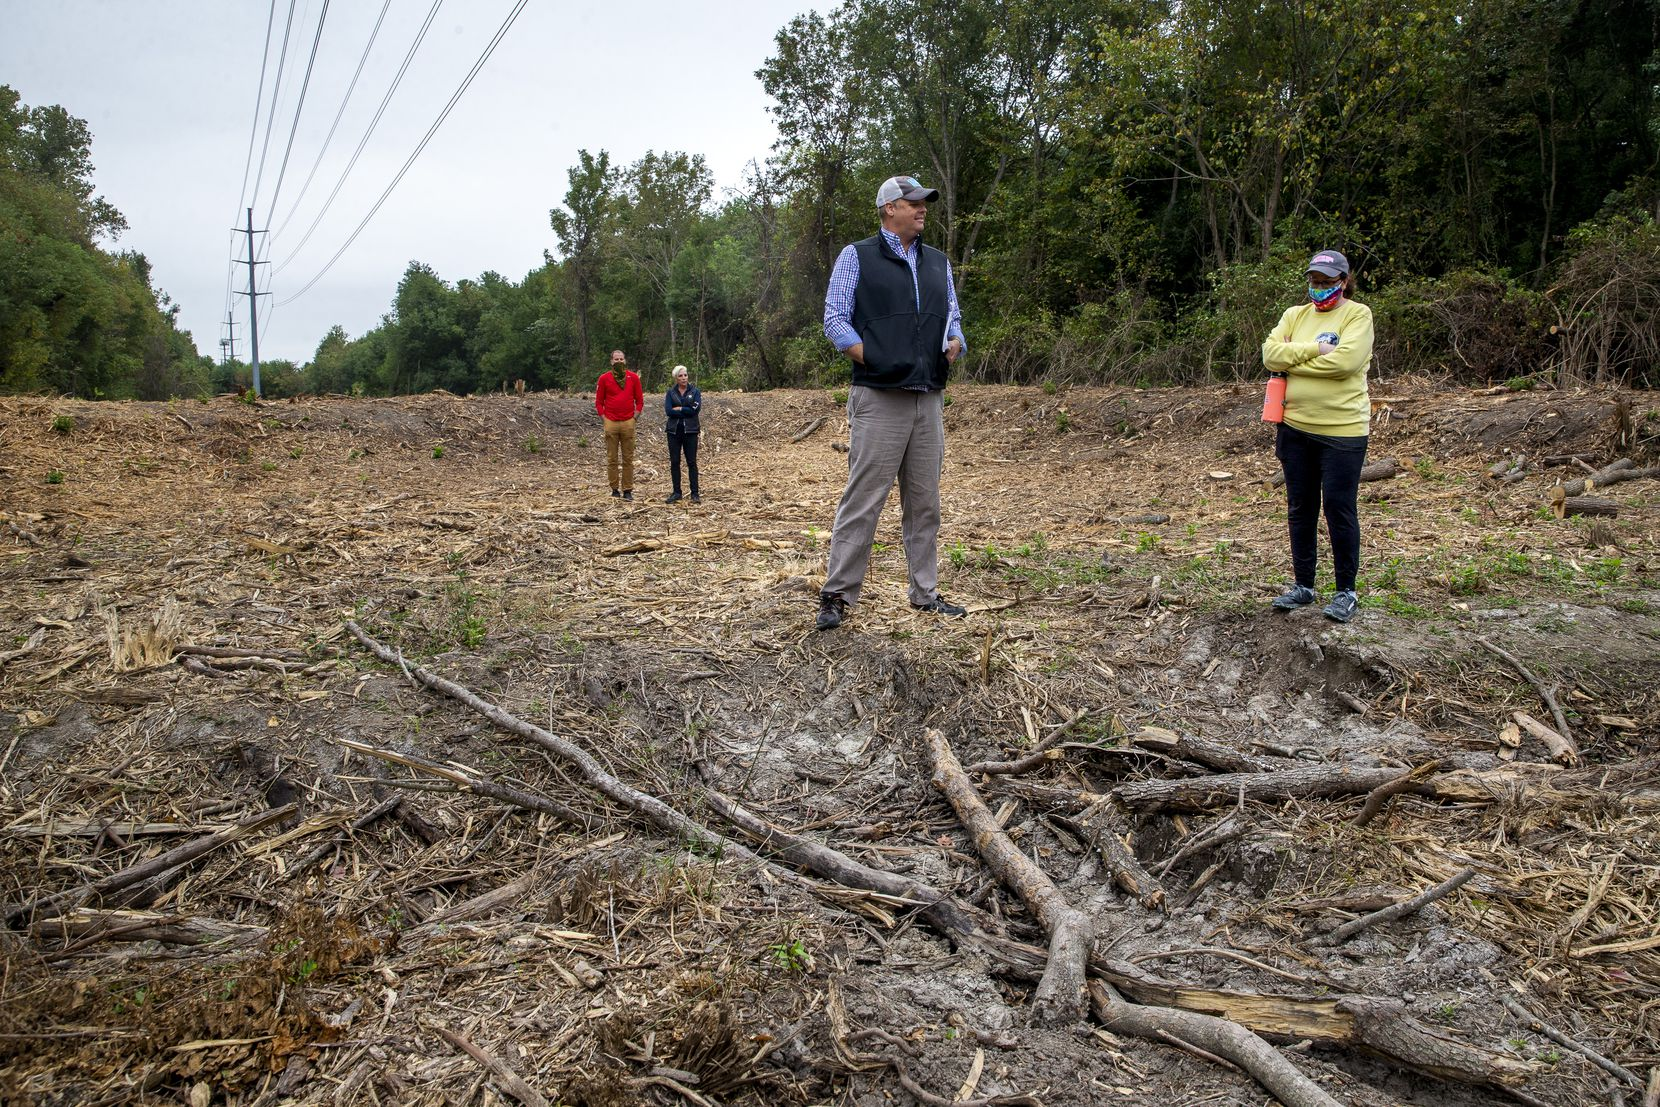 """Master naturalist Ben Sandifer (center) and City Council member Paula Blackmon (right) examine Oncor's clear-cutting, which Sandifer labeled """"a local extinction event."""""""